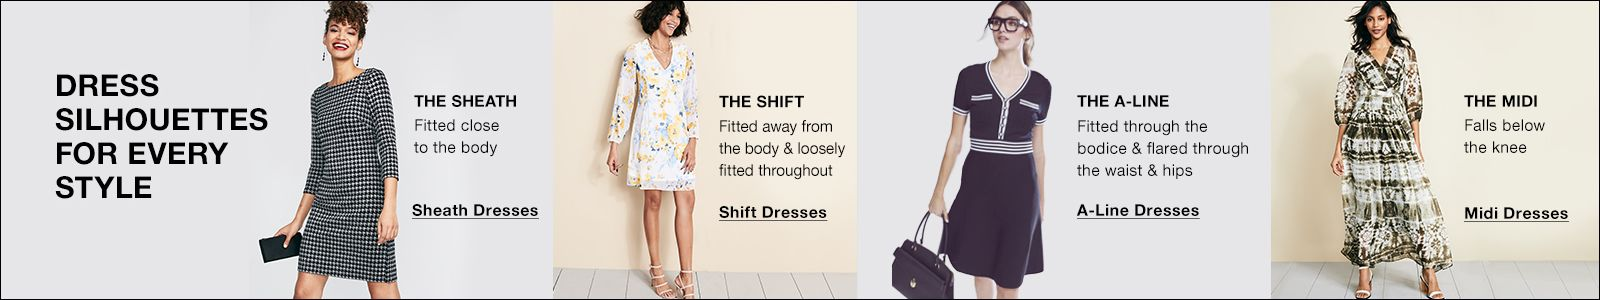 Dress Silhouettes For Every Style, The Sheath, The Shift, The a-Line, The Midi